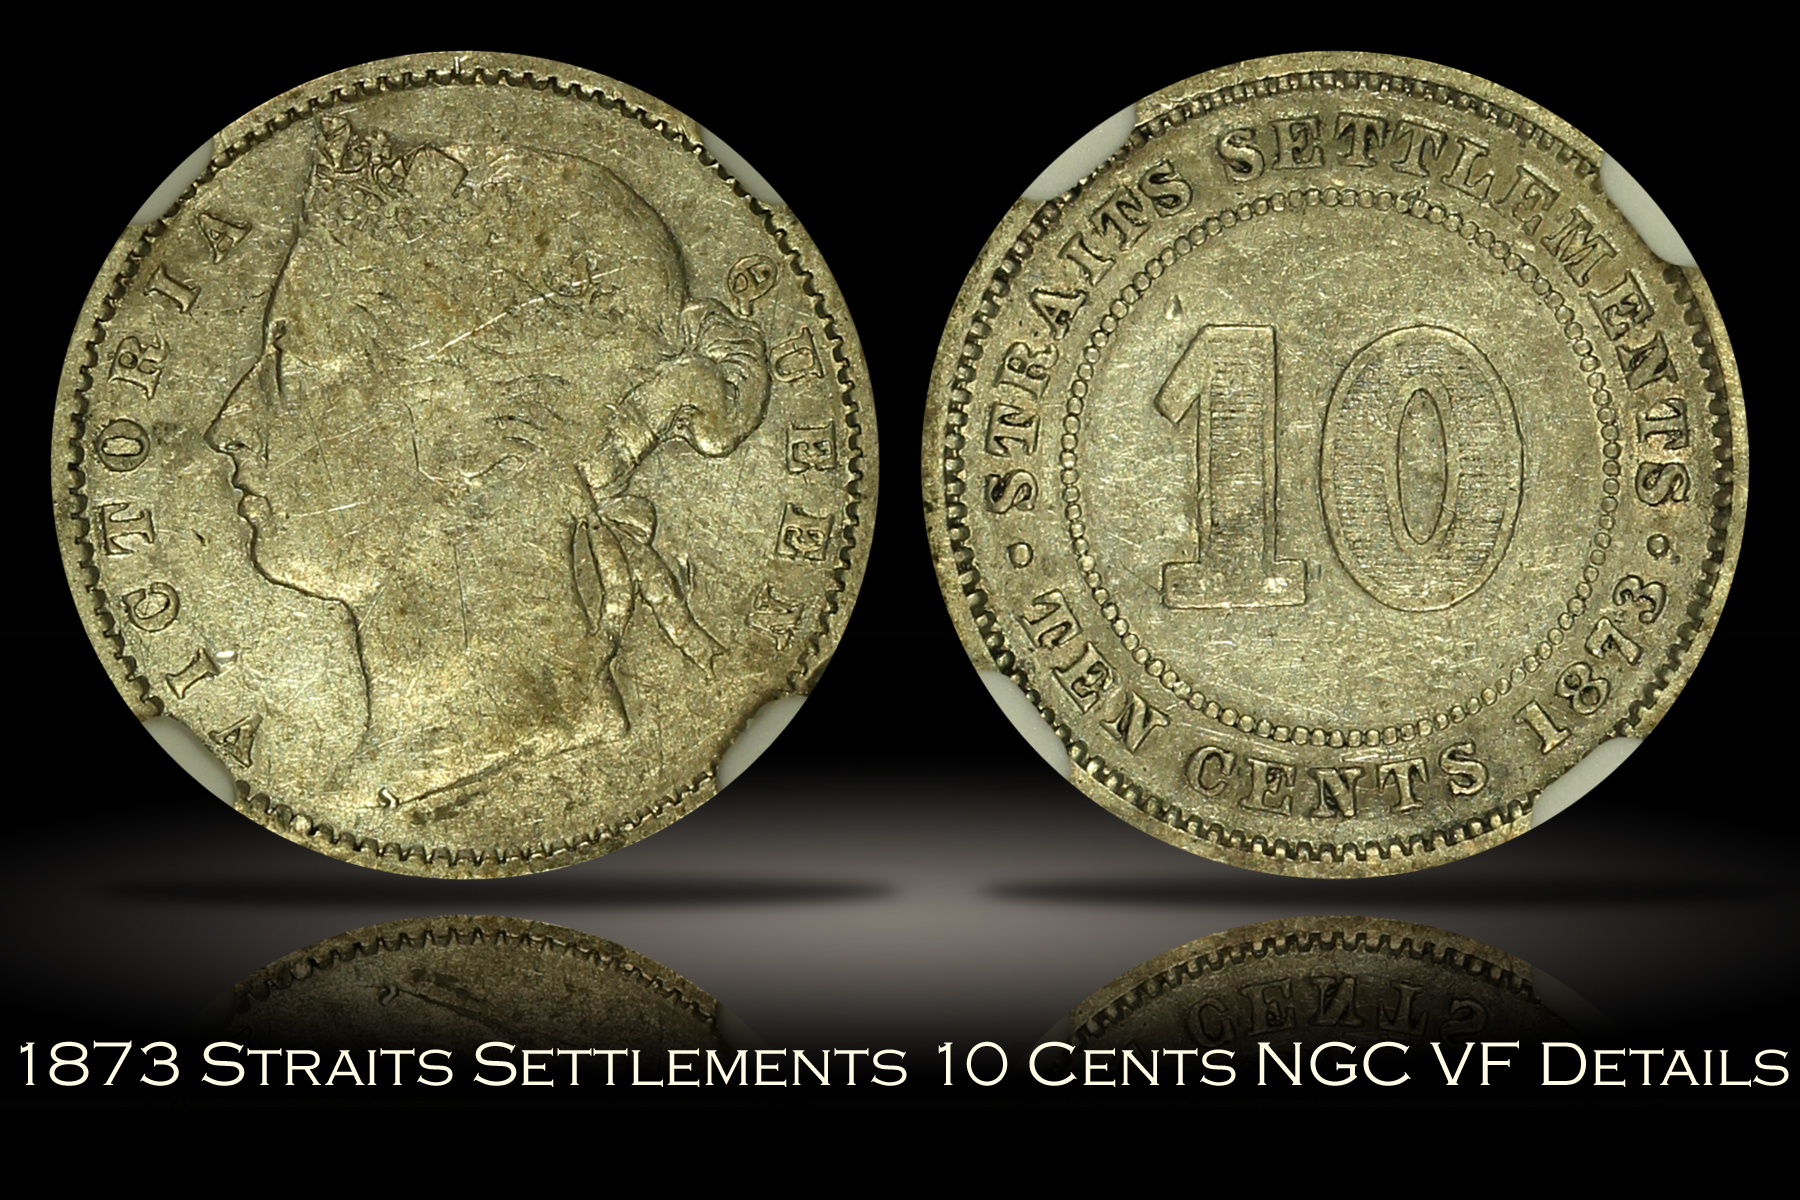 1873 Straits Settlements 10 Cents NGC VF Details